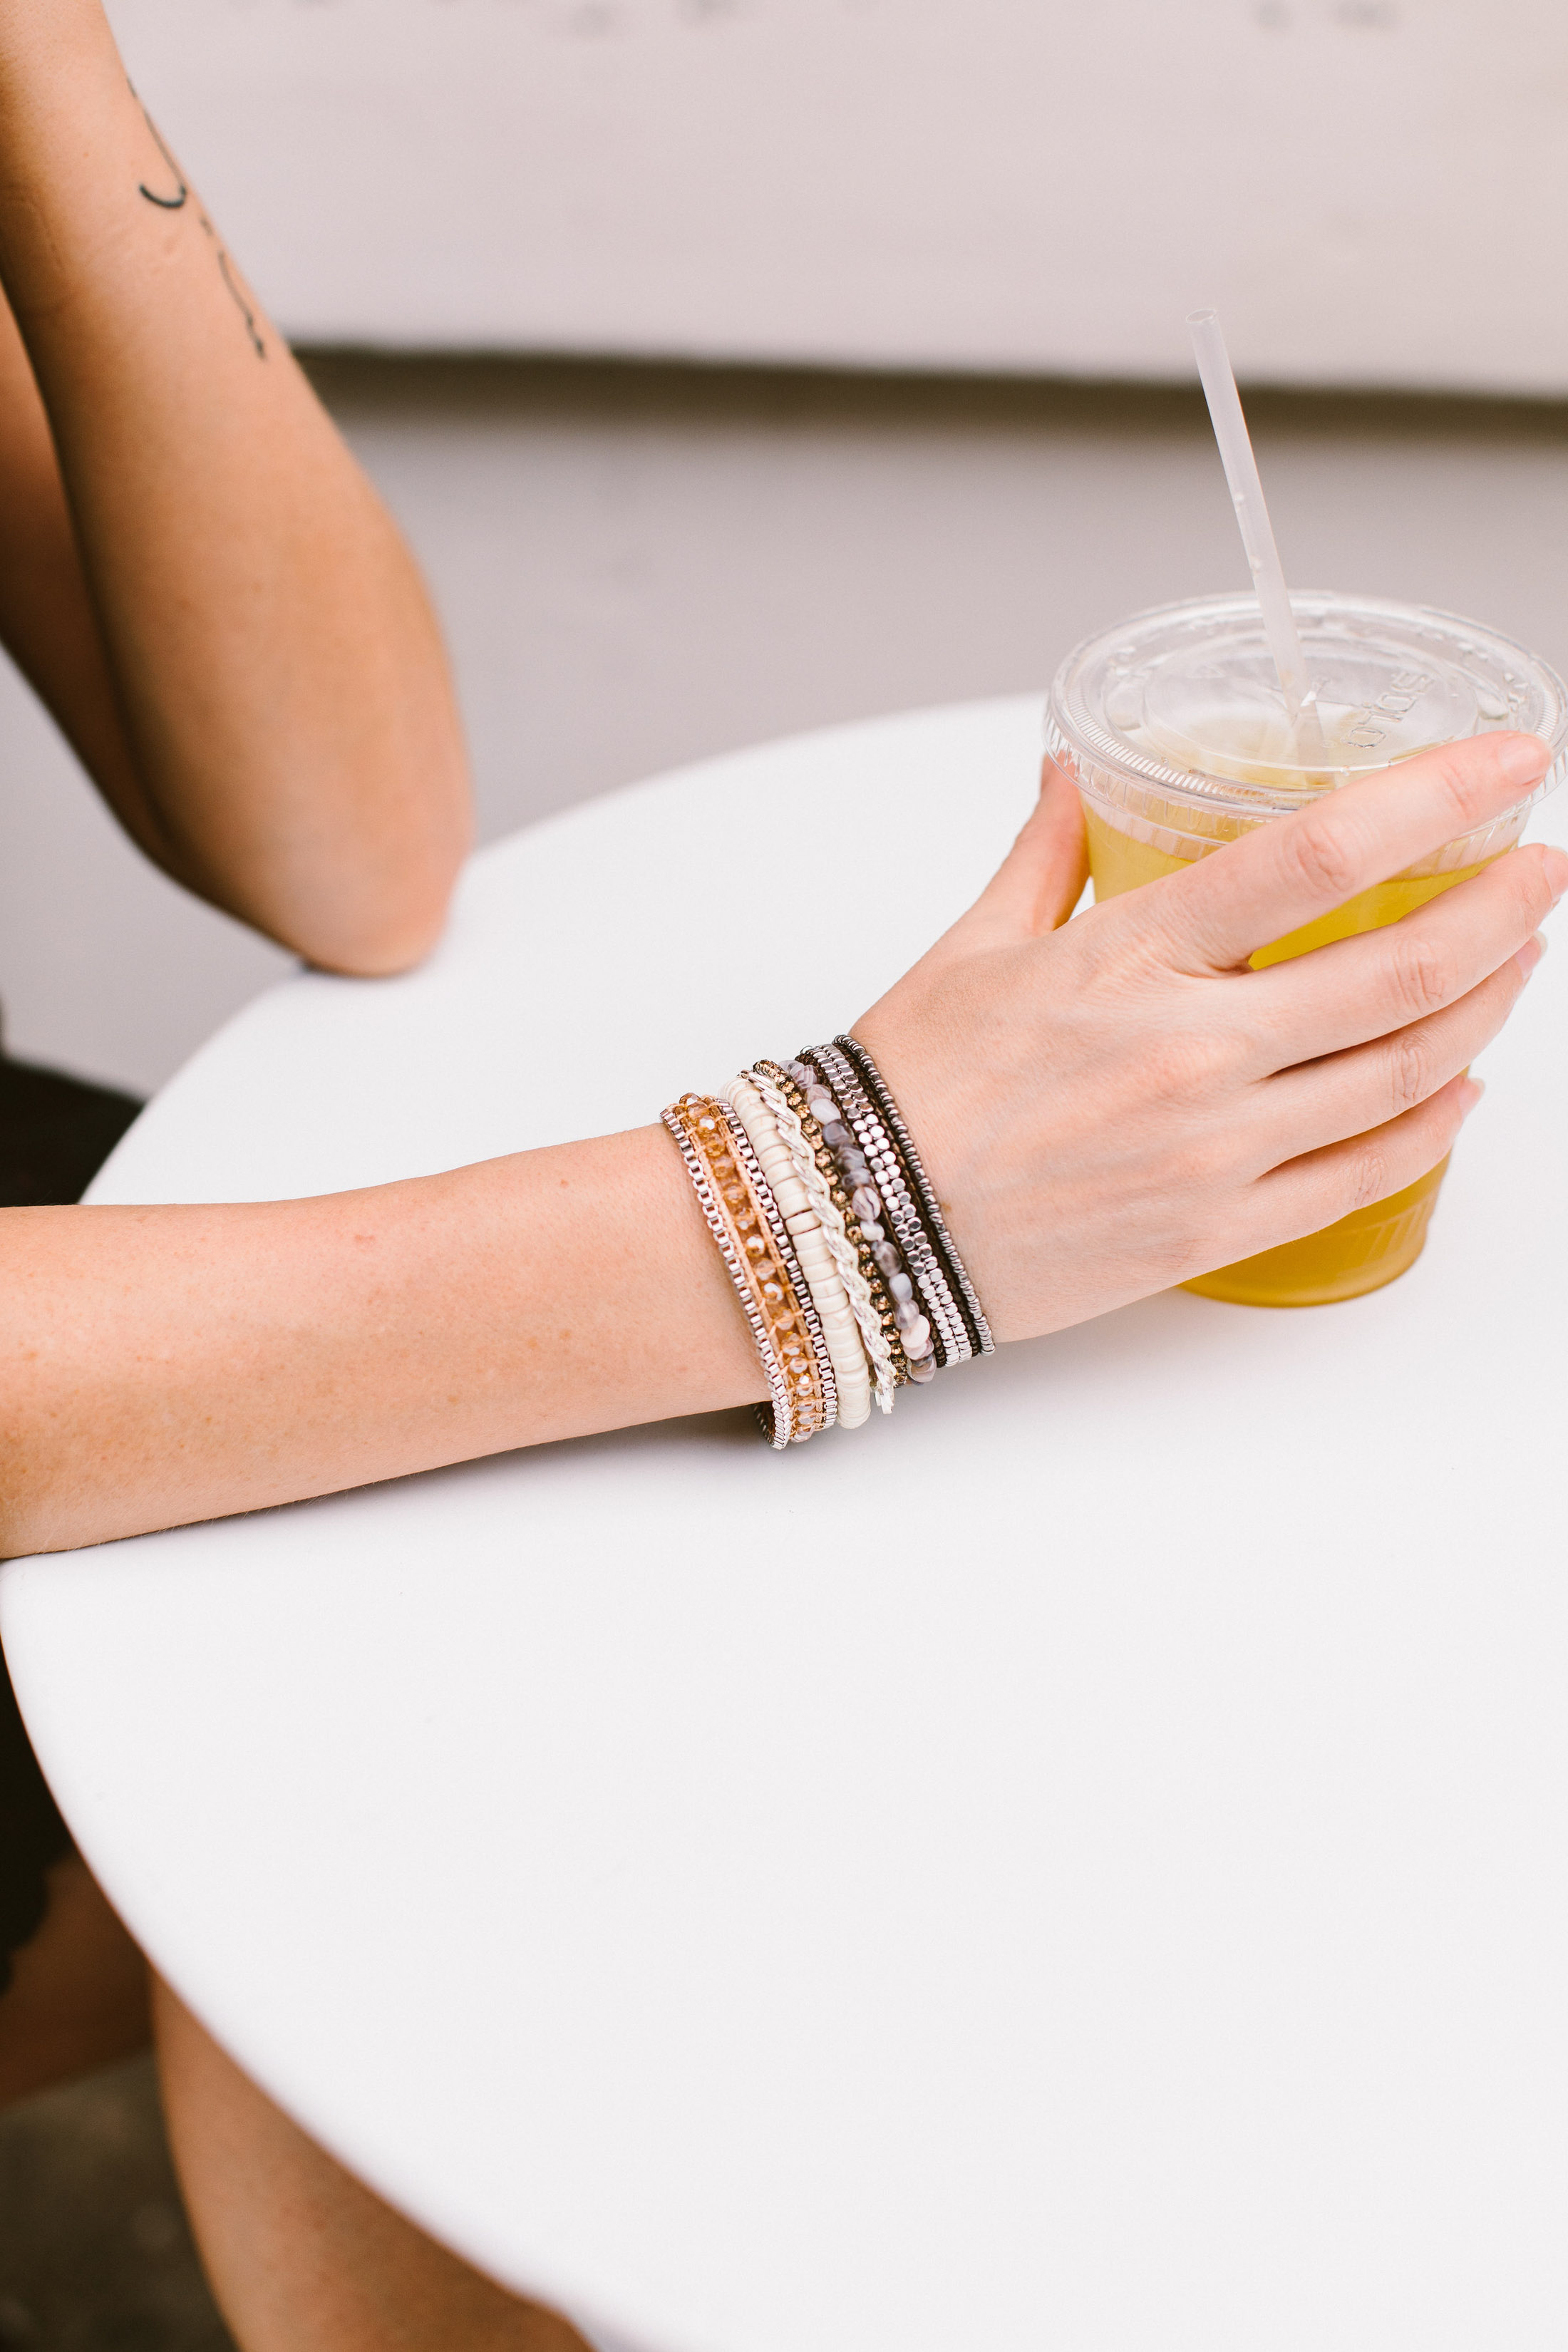 It's Summertime! We're breaking out the Victoria Emerson wrap bracelets — the perfect accessory for beach & vacation travel outfits. Wear 'em like this...